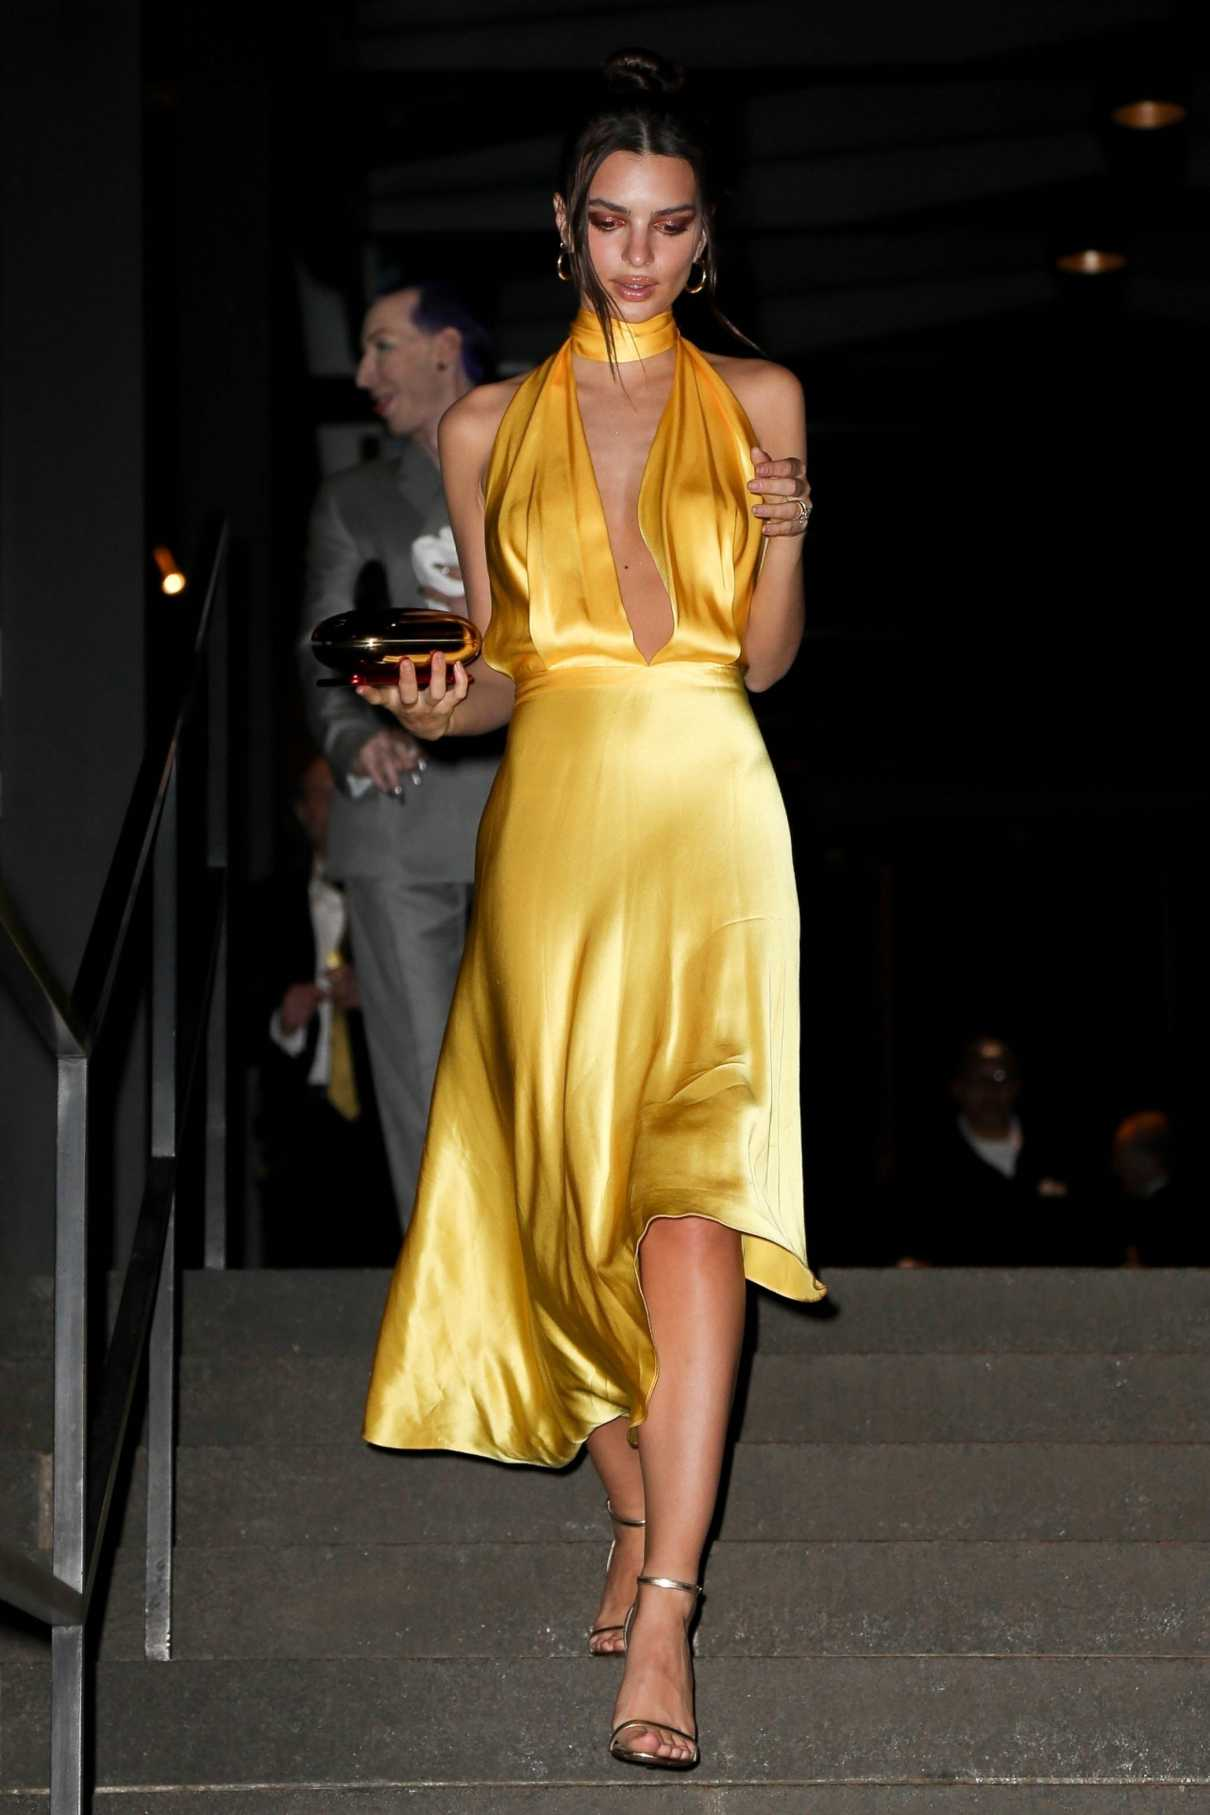 Резултат слика за emily ratajkowski yellow dress wedding